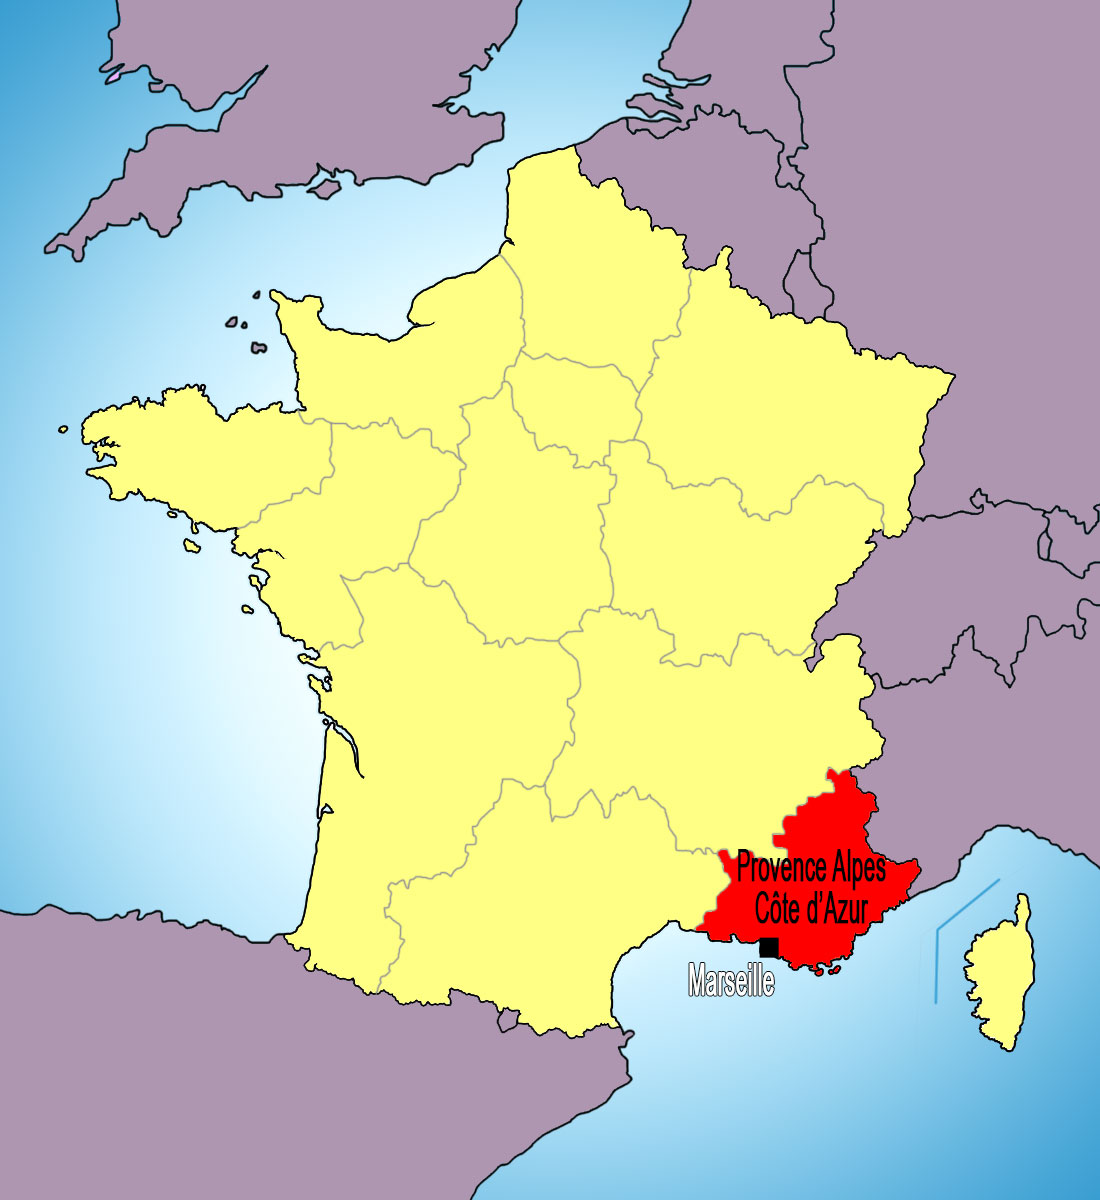 Provence-Alpes-Côte d'Azur on a Map of France © French Moments